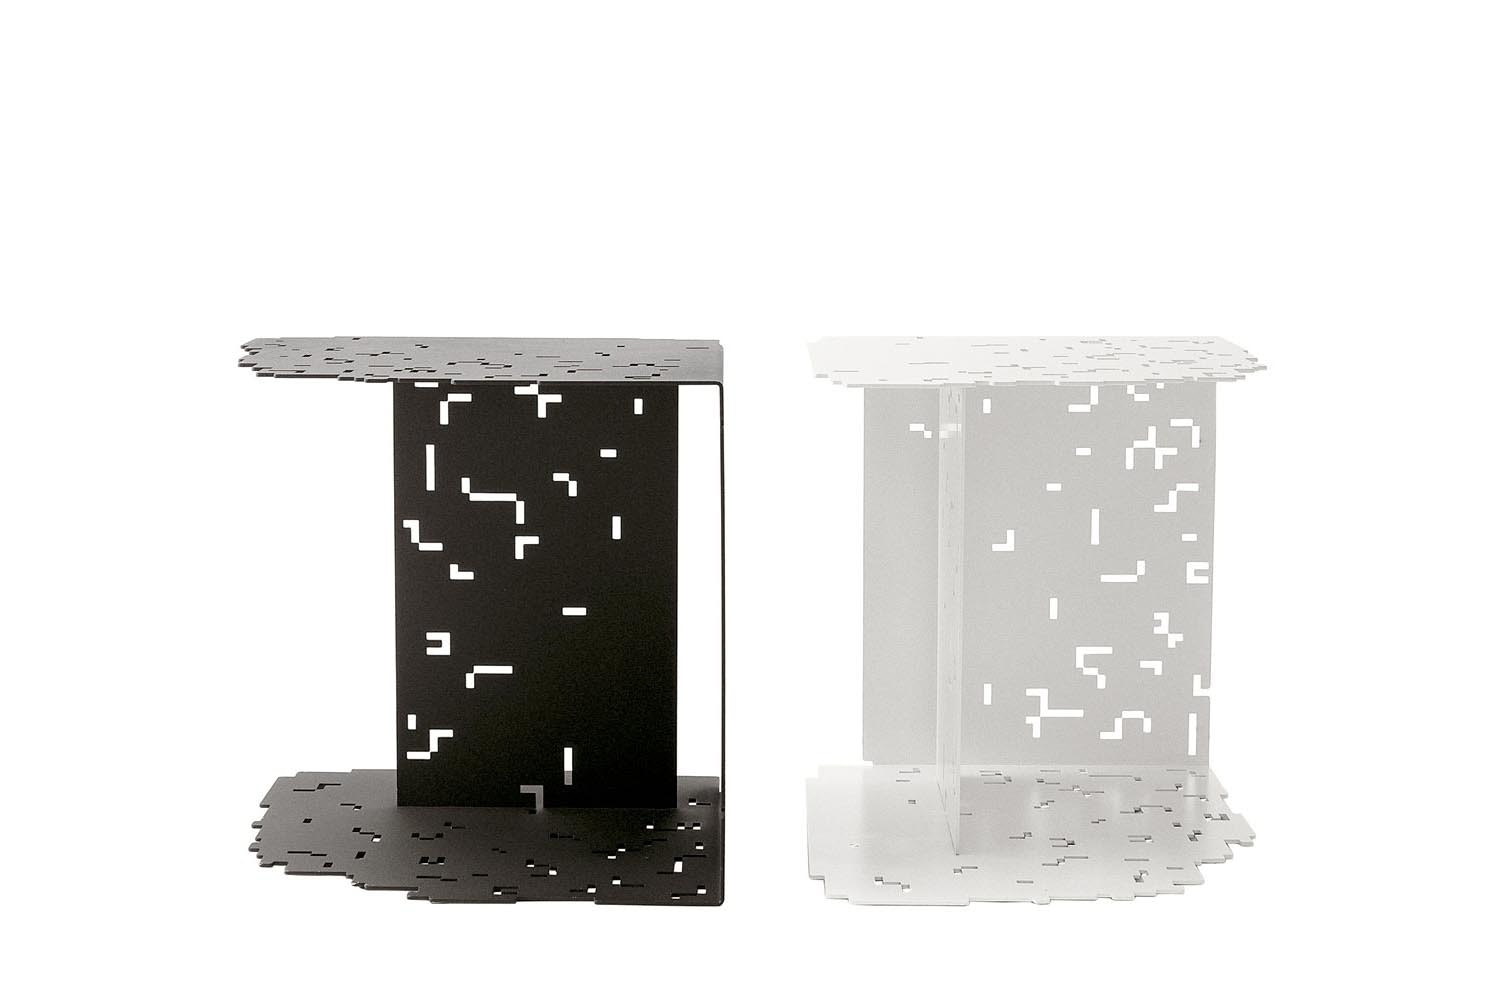 Digitable Side Table by Patricia Urquiola for B&B Italia